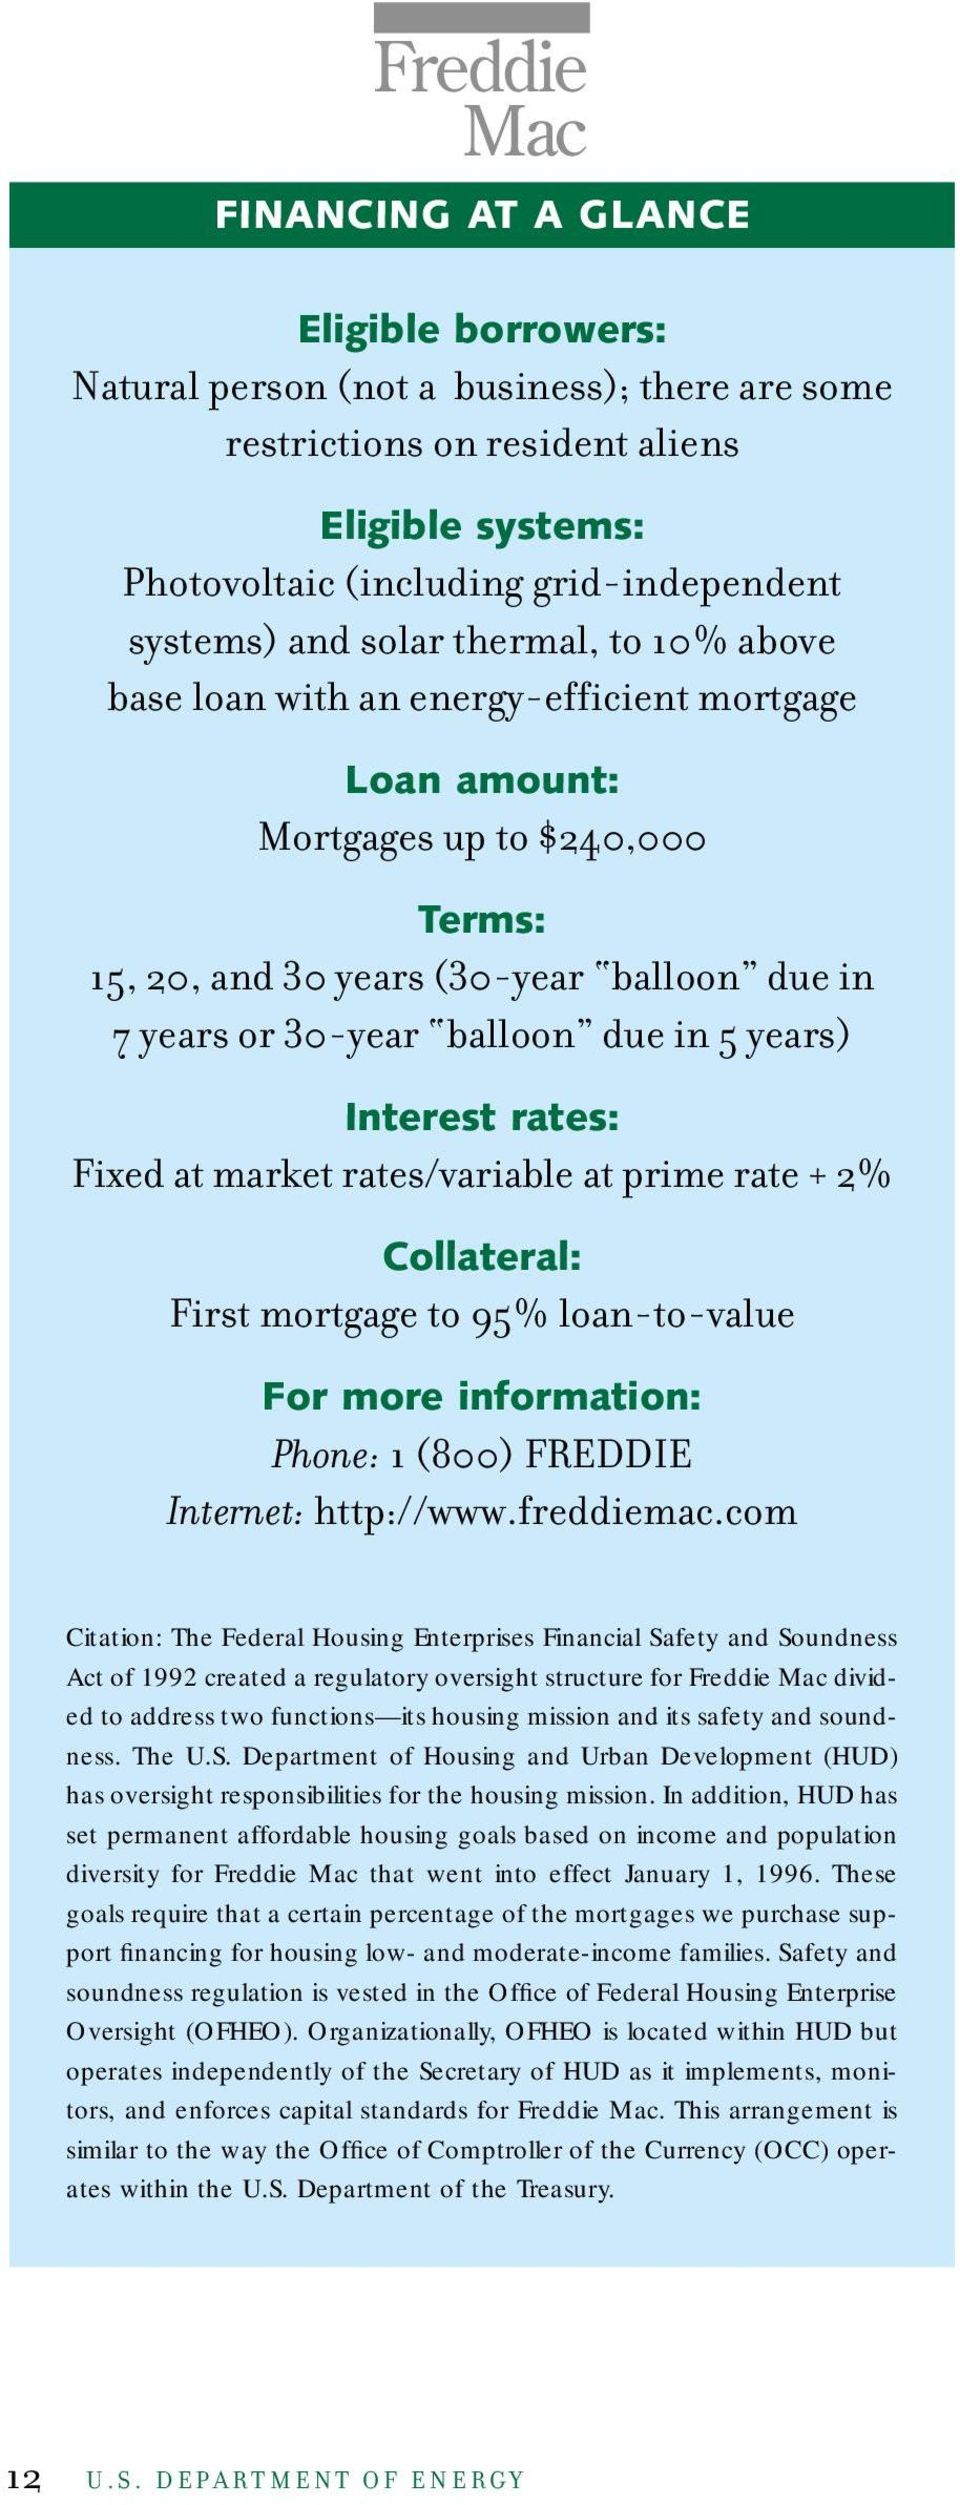 balloon due in 5 years) Interest rates: Fixed at market rates/variable at prime rate + 2% Collateral: First mortgage to 95% loan-to-value For more information: Phone: 1 (800) FREDDIE Internet: